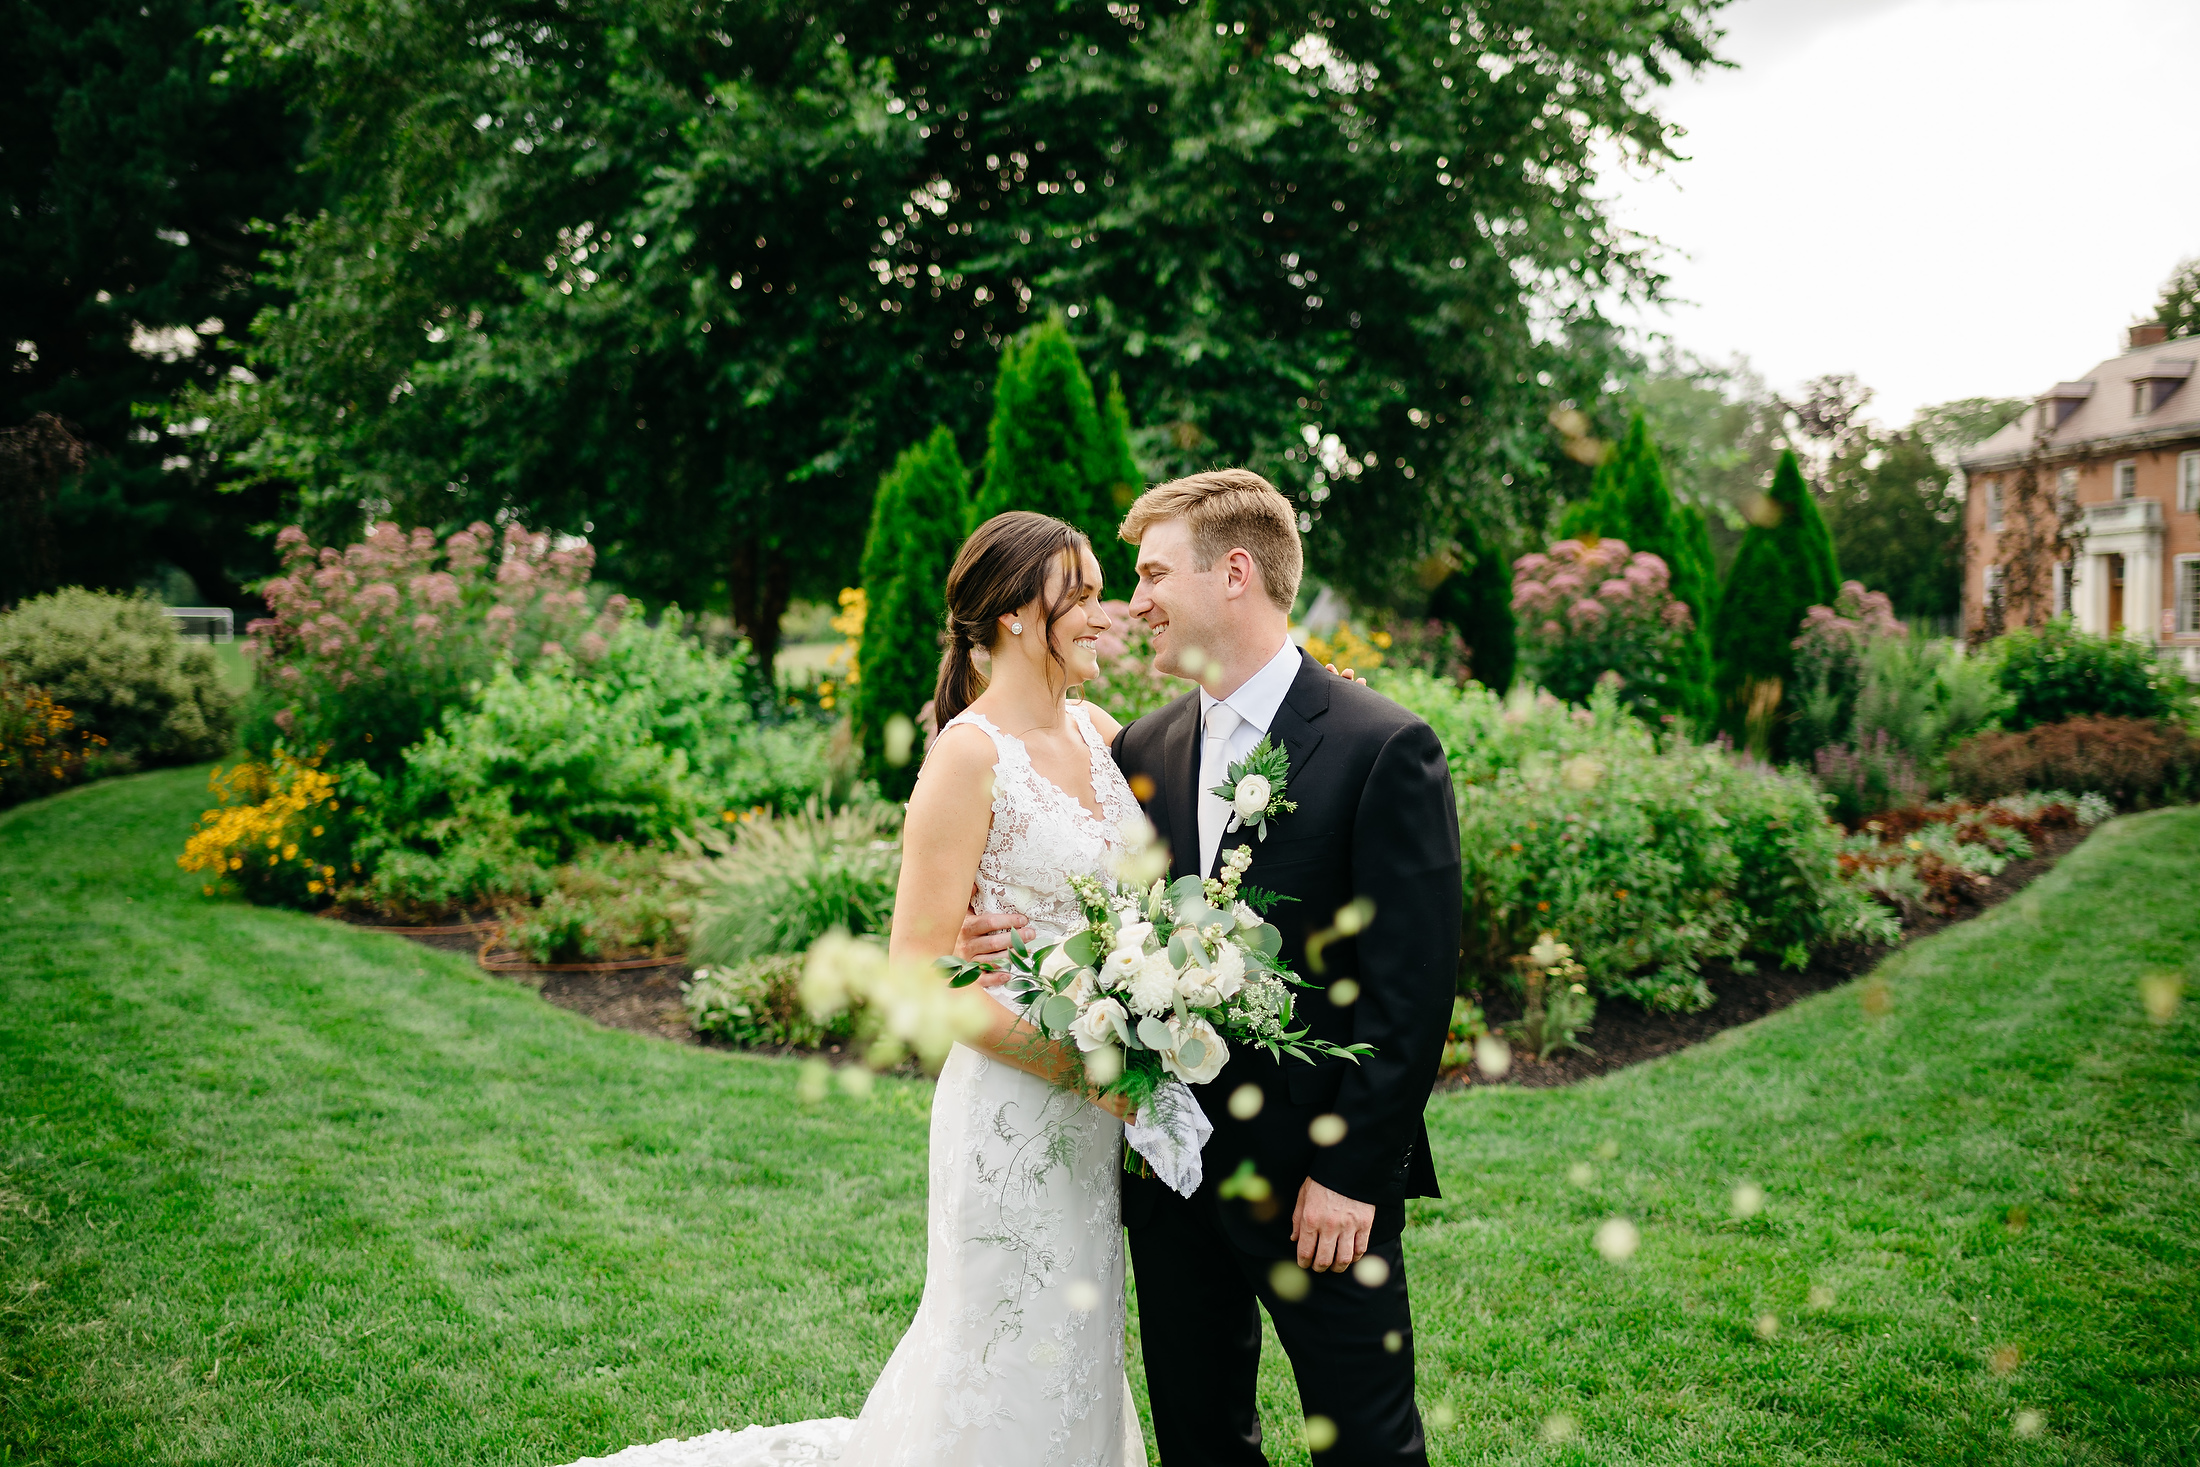 creative garden wedding portrait at elm banks